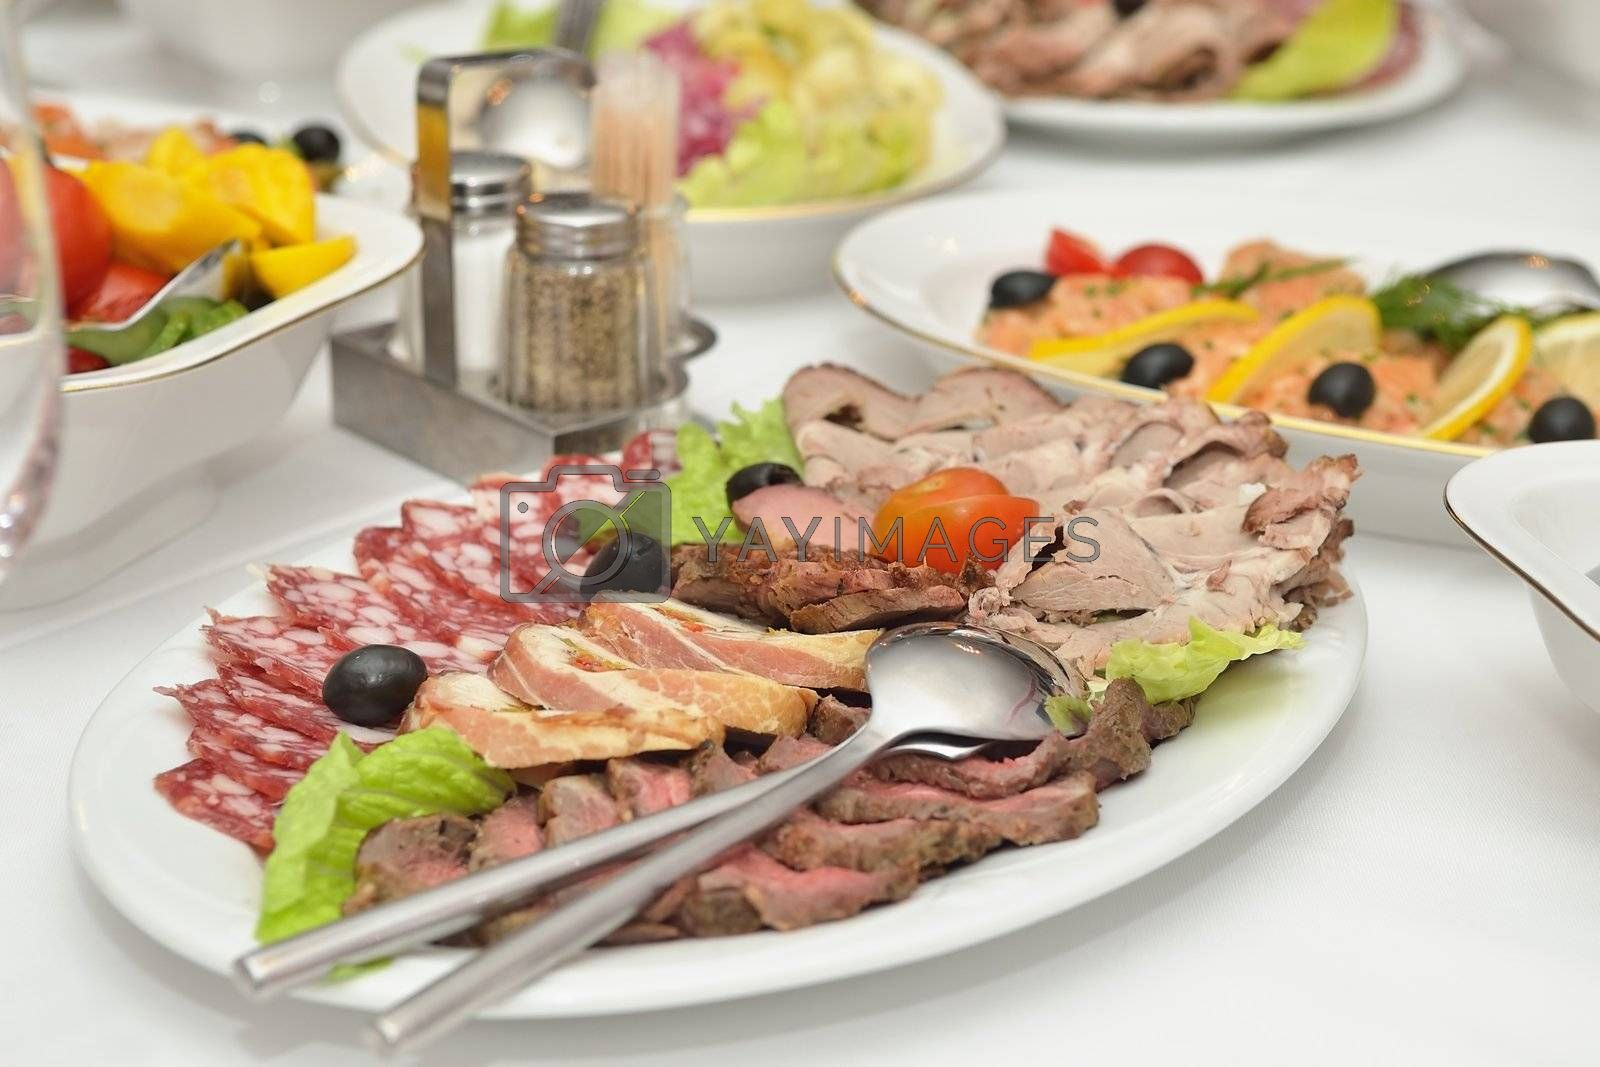 Appetizer of meat served at the table.